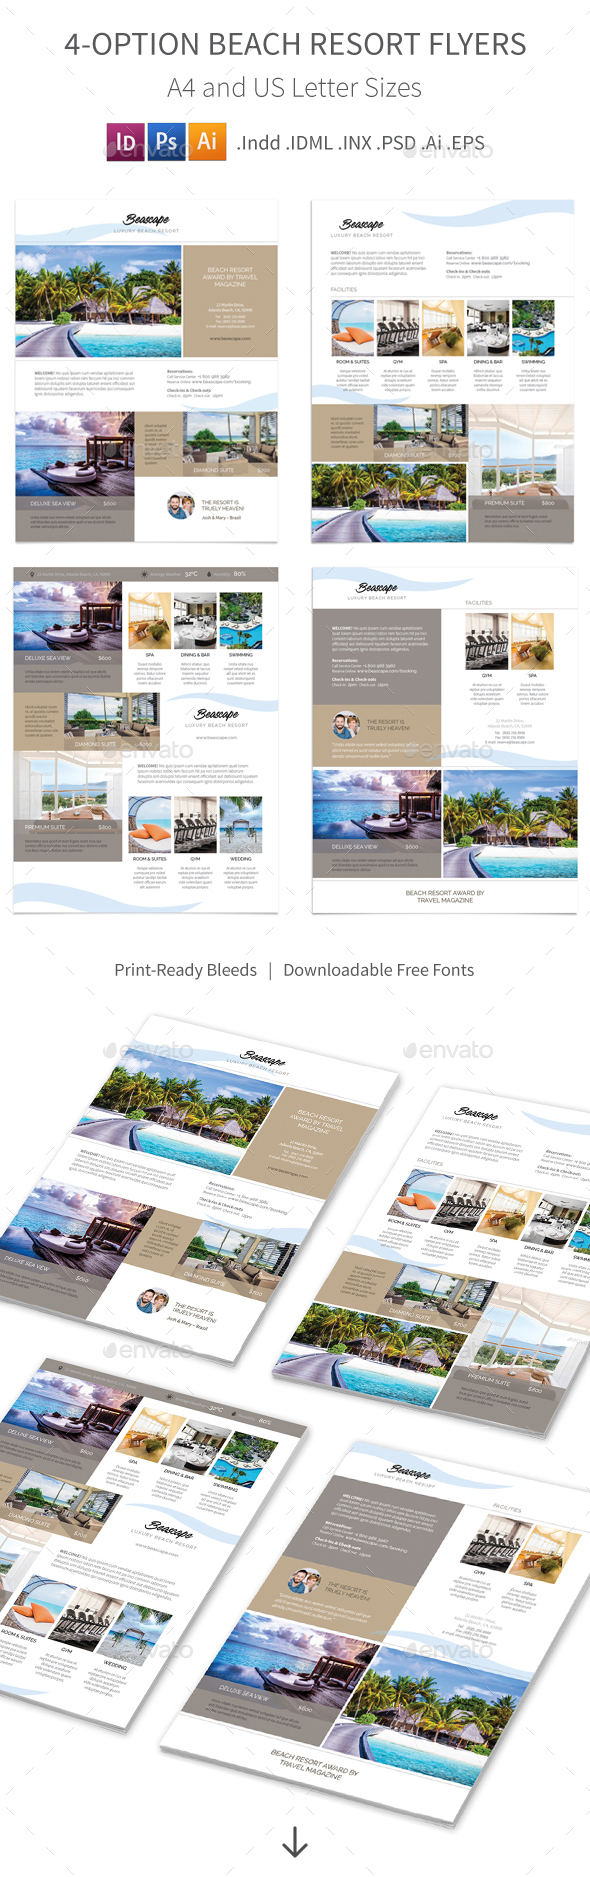 Beach Resort Flyers 2 – 4 Options - Corporate Flyers